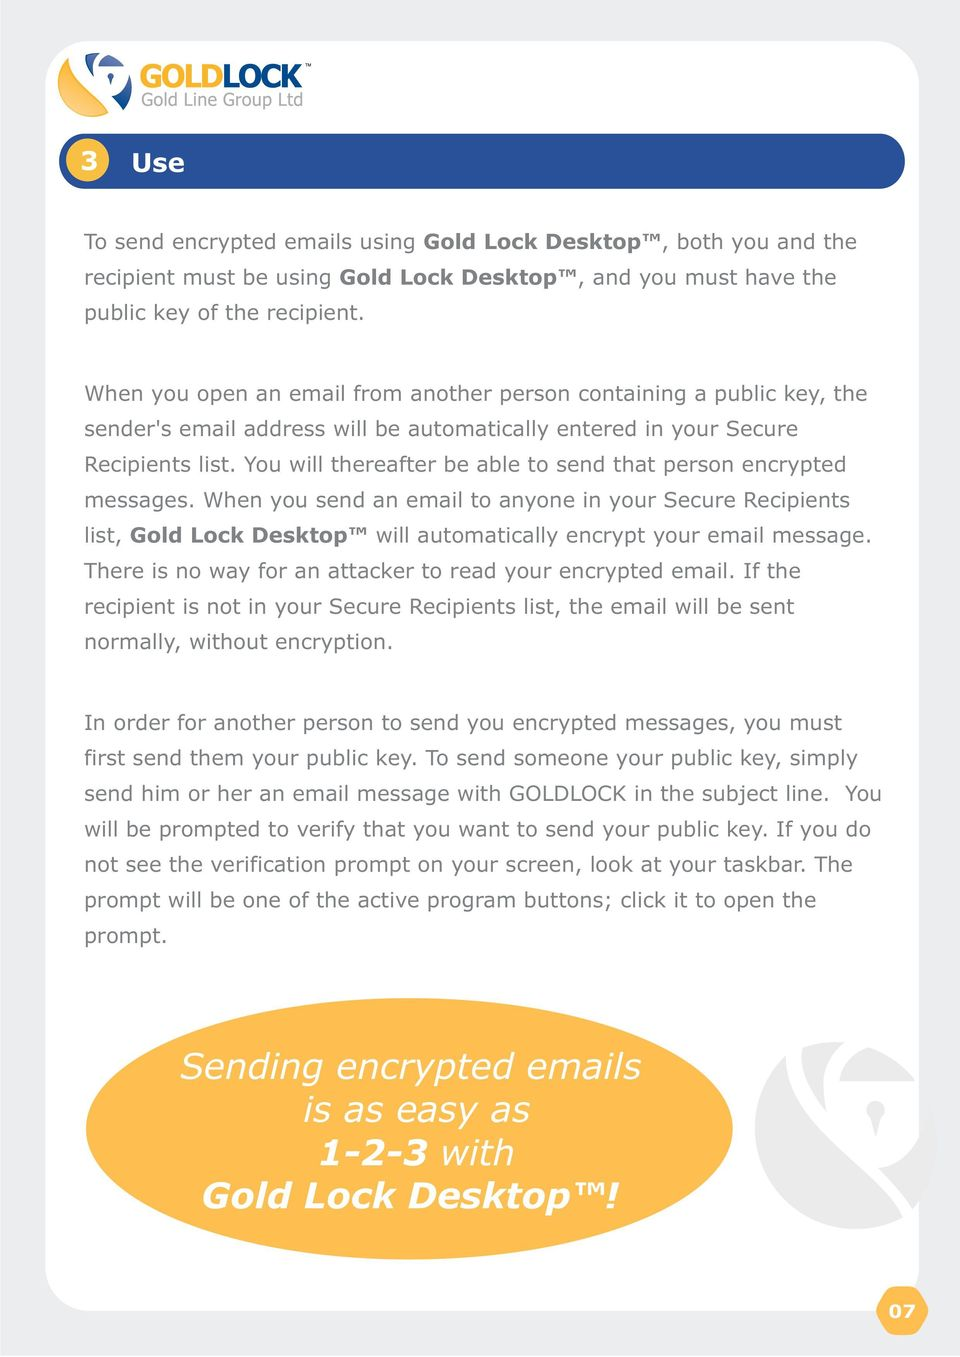 You will thereafter be able to send that person encrypted messages. When you send an email to anyone in your Secure Recipients list, will automatically encrypt your email message.